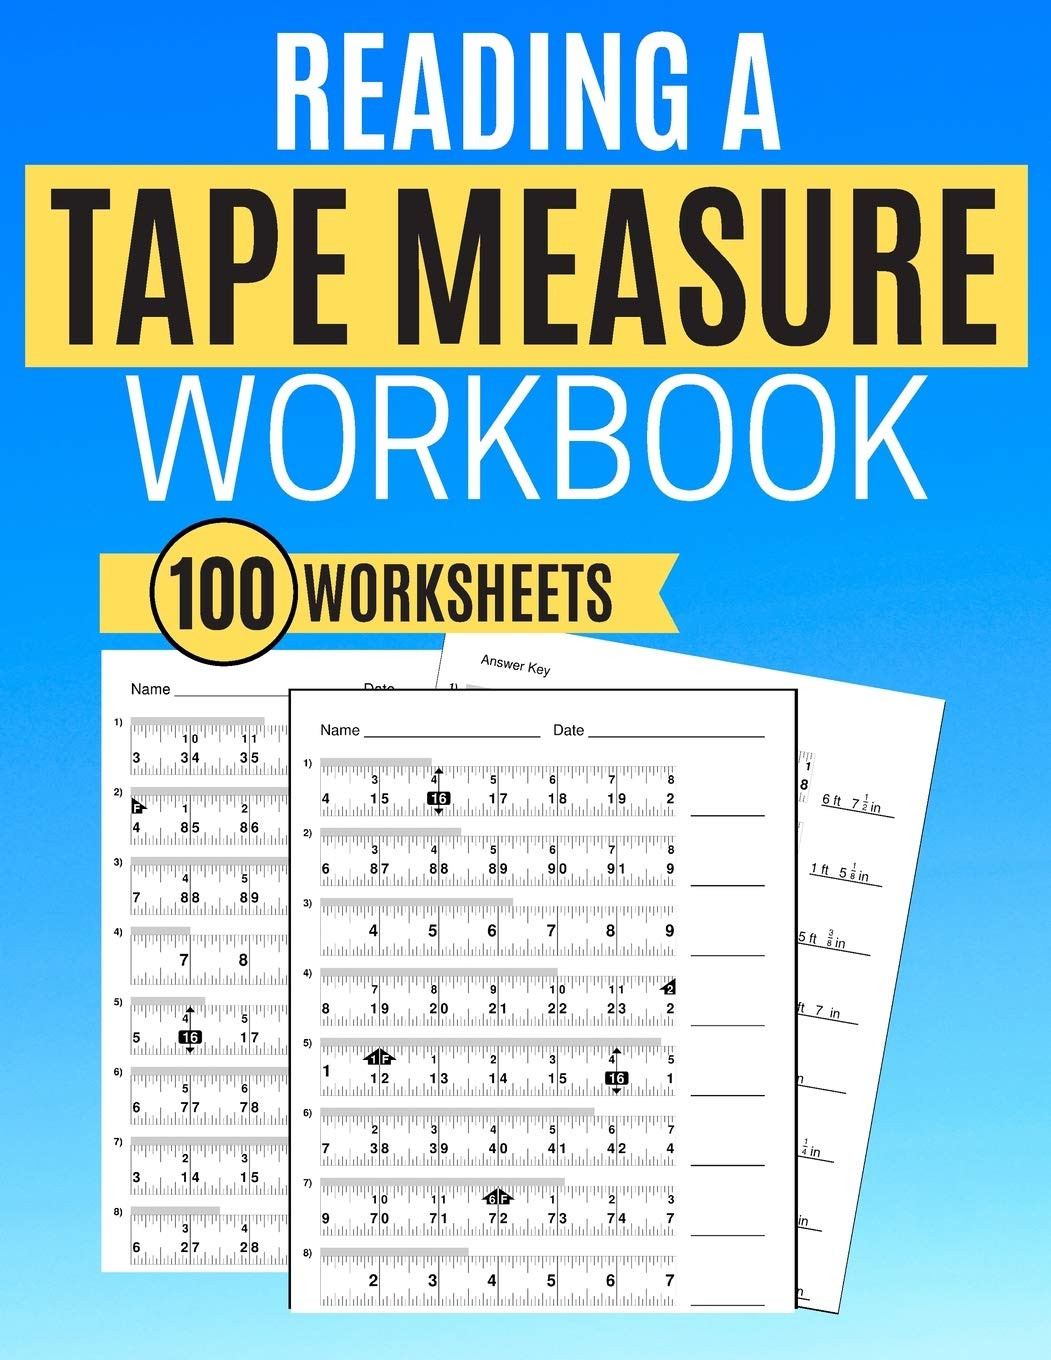 Reading A Tape Measure Worksheet